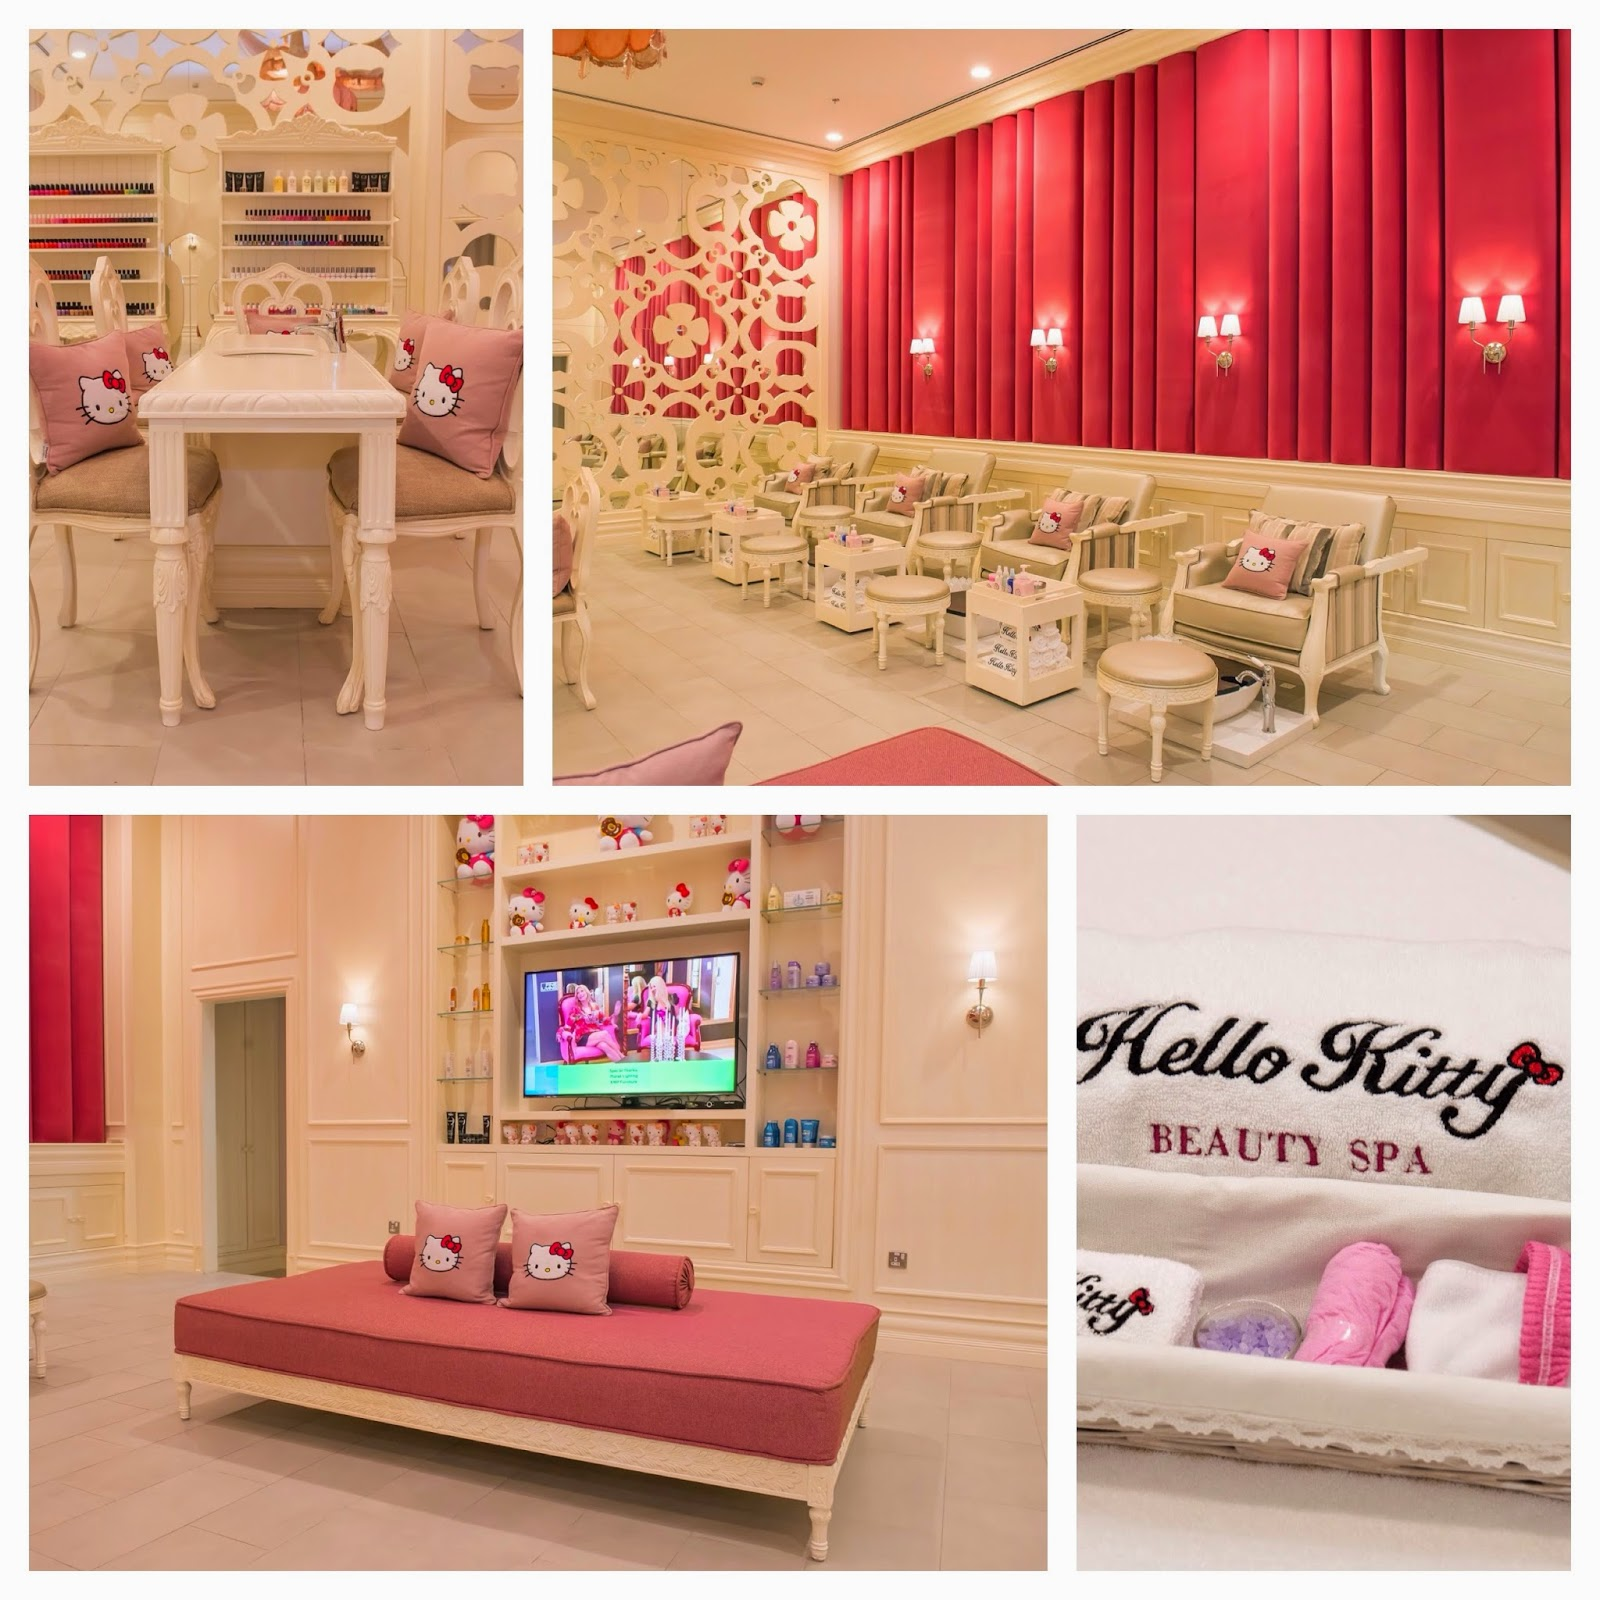 Hello Kitty Spa Pedicure Chair Best Design Of All Time Grand Opening The Dubai Mall  Mommy In